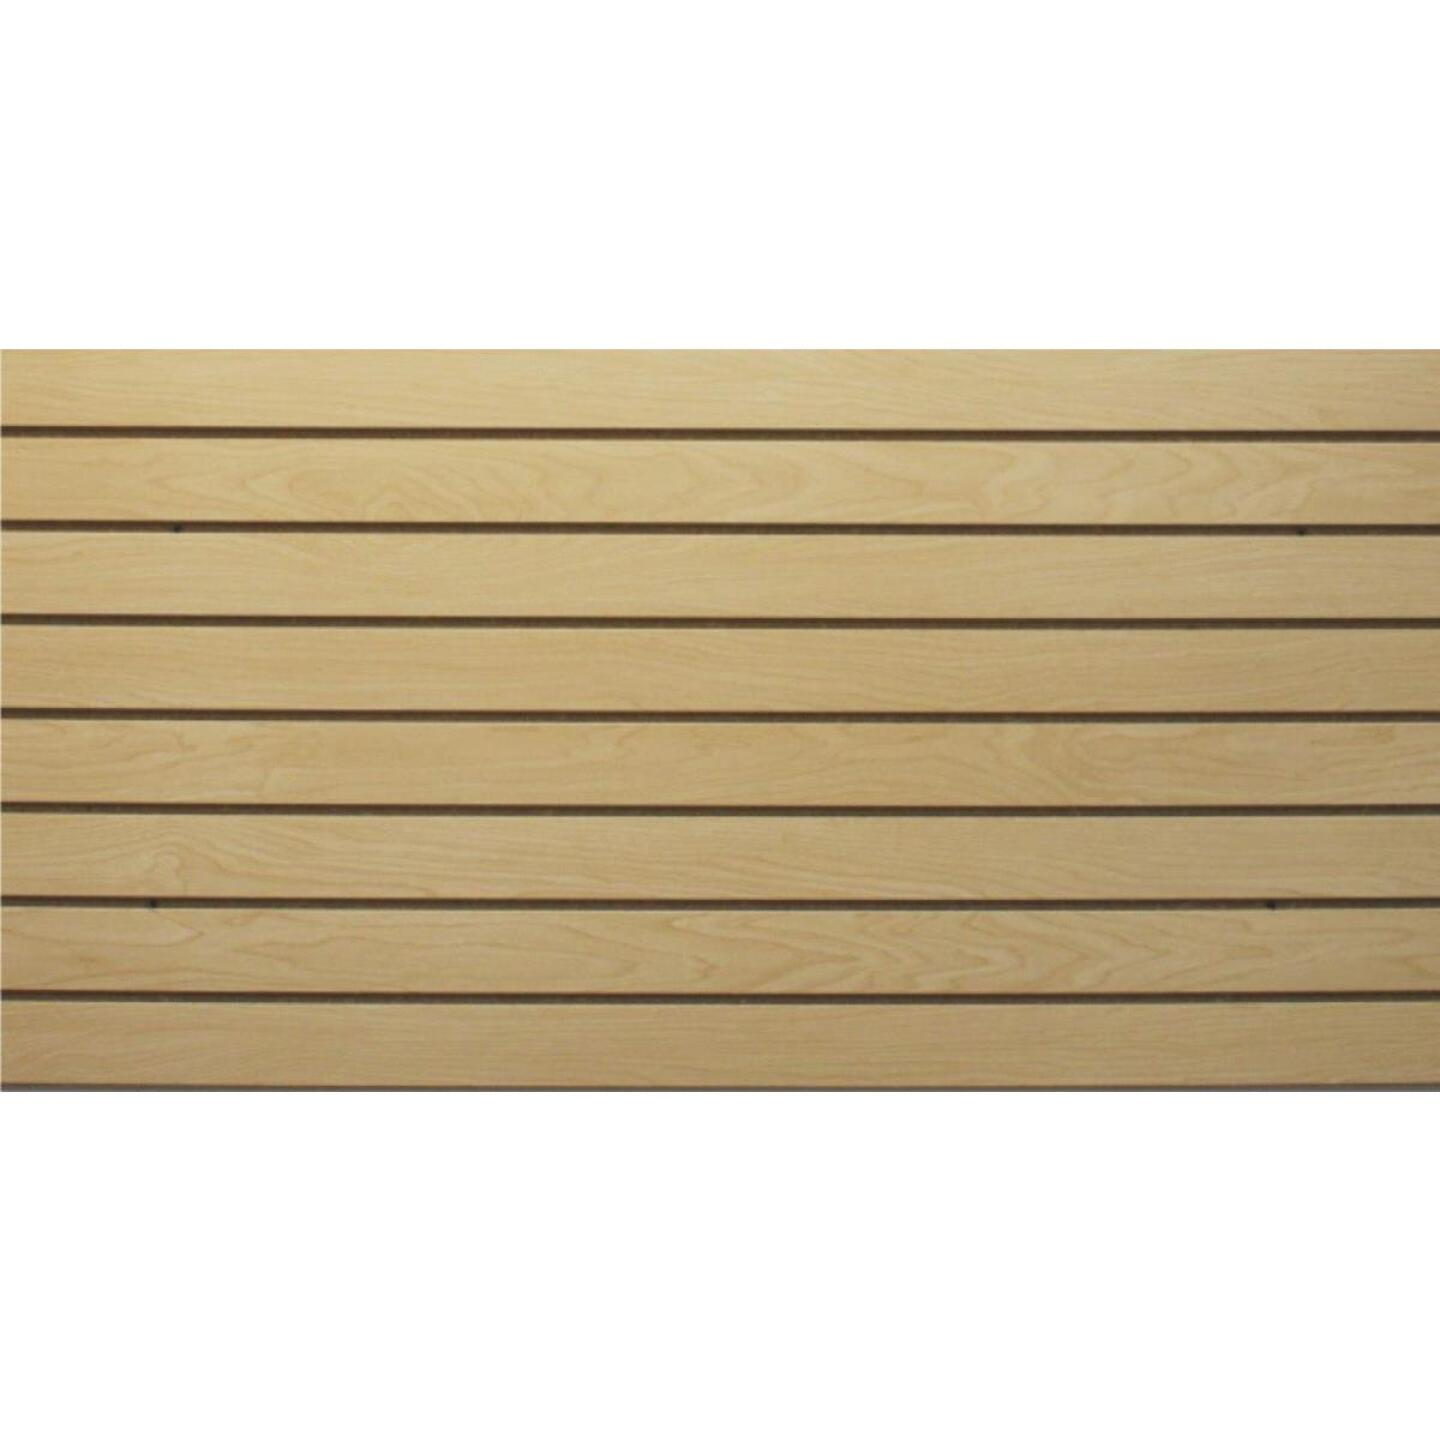 GarageEscape 24 in. x 48 in. Anchor Core Slatwall, Maple Image 1